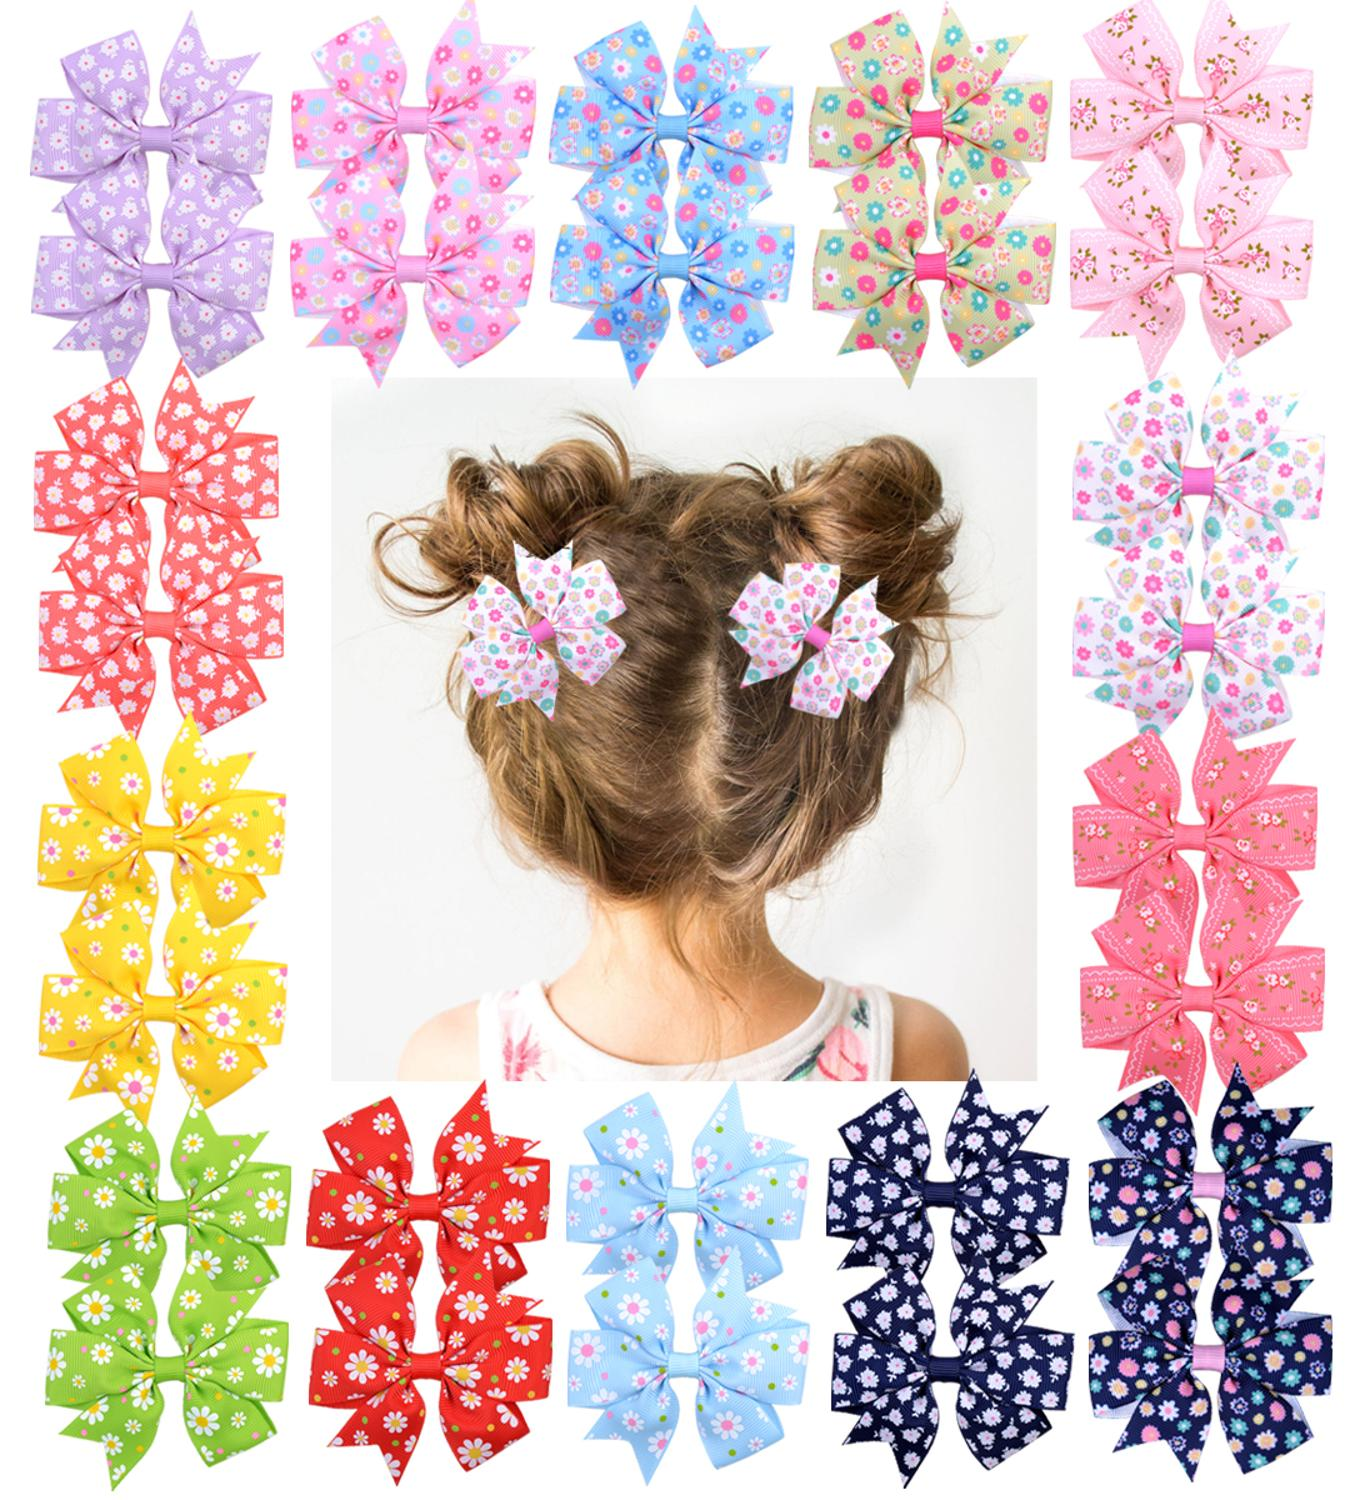 Grosgrain Ribbon Bows-Clips Hairpin Hair-Accessories Hair-Bows-Boutique Headware Girl's title=